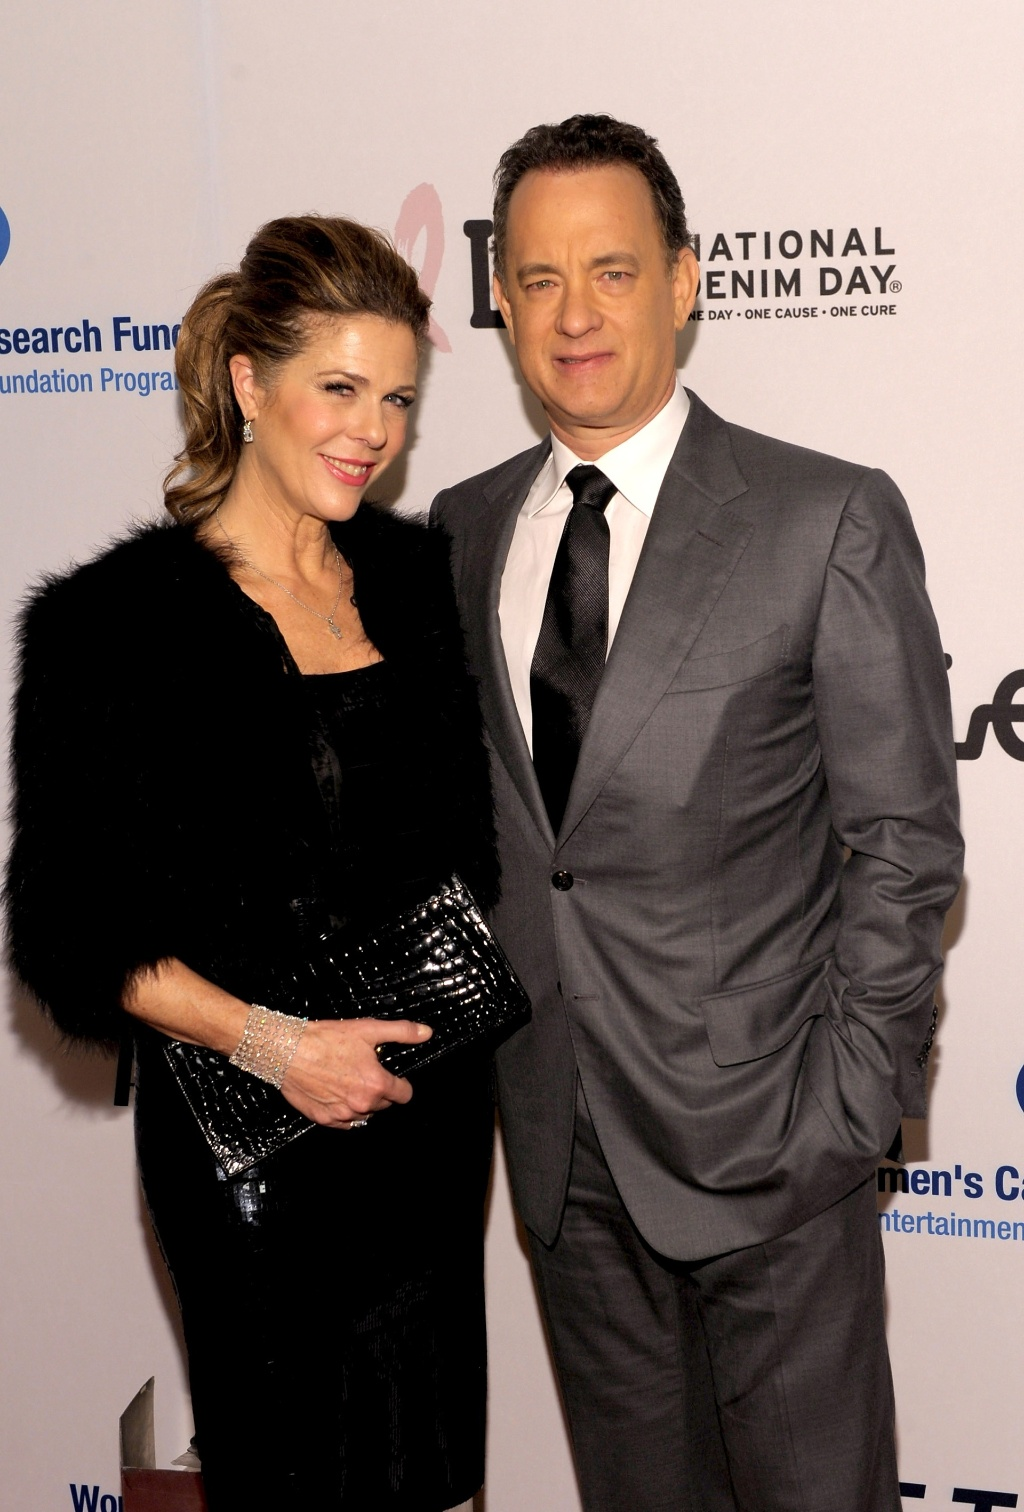 Tom Hanks e a esposa Rita Wilson durante evento beneficiente na Califórnia (27/03/2010)